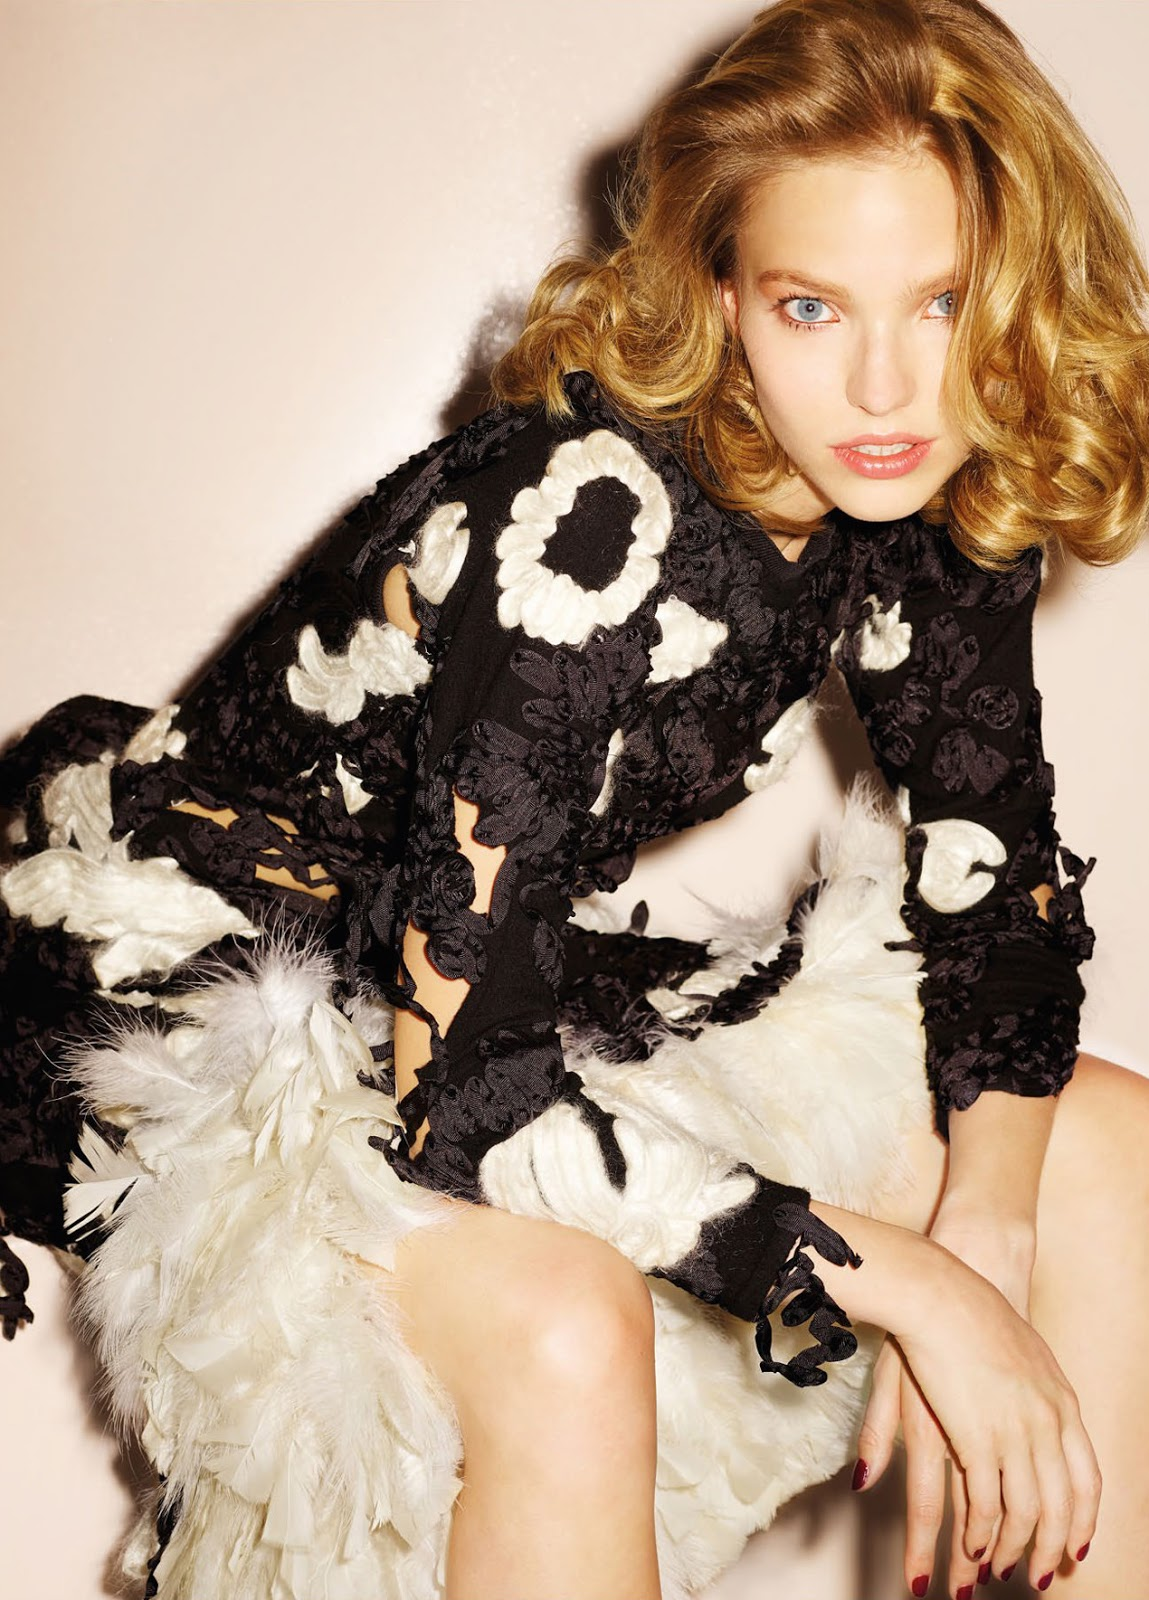 Sasha Luss by Ezra Petronio for Vogue China, October 2015 2.jpg